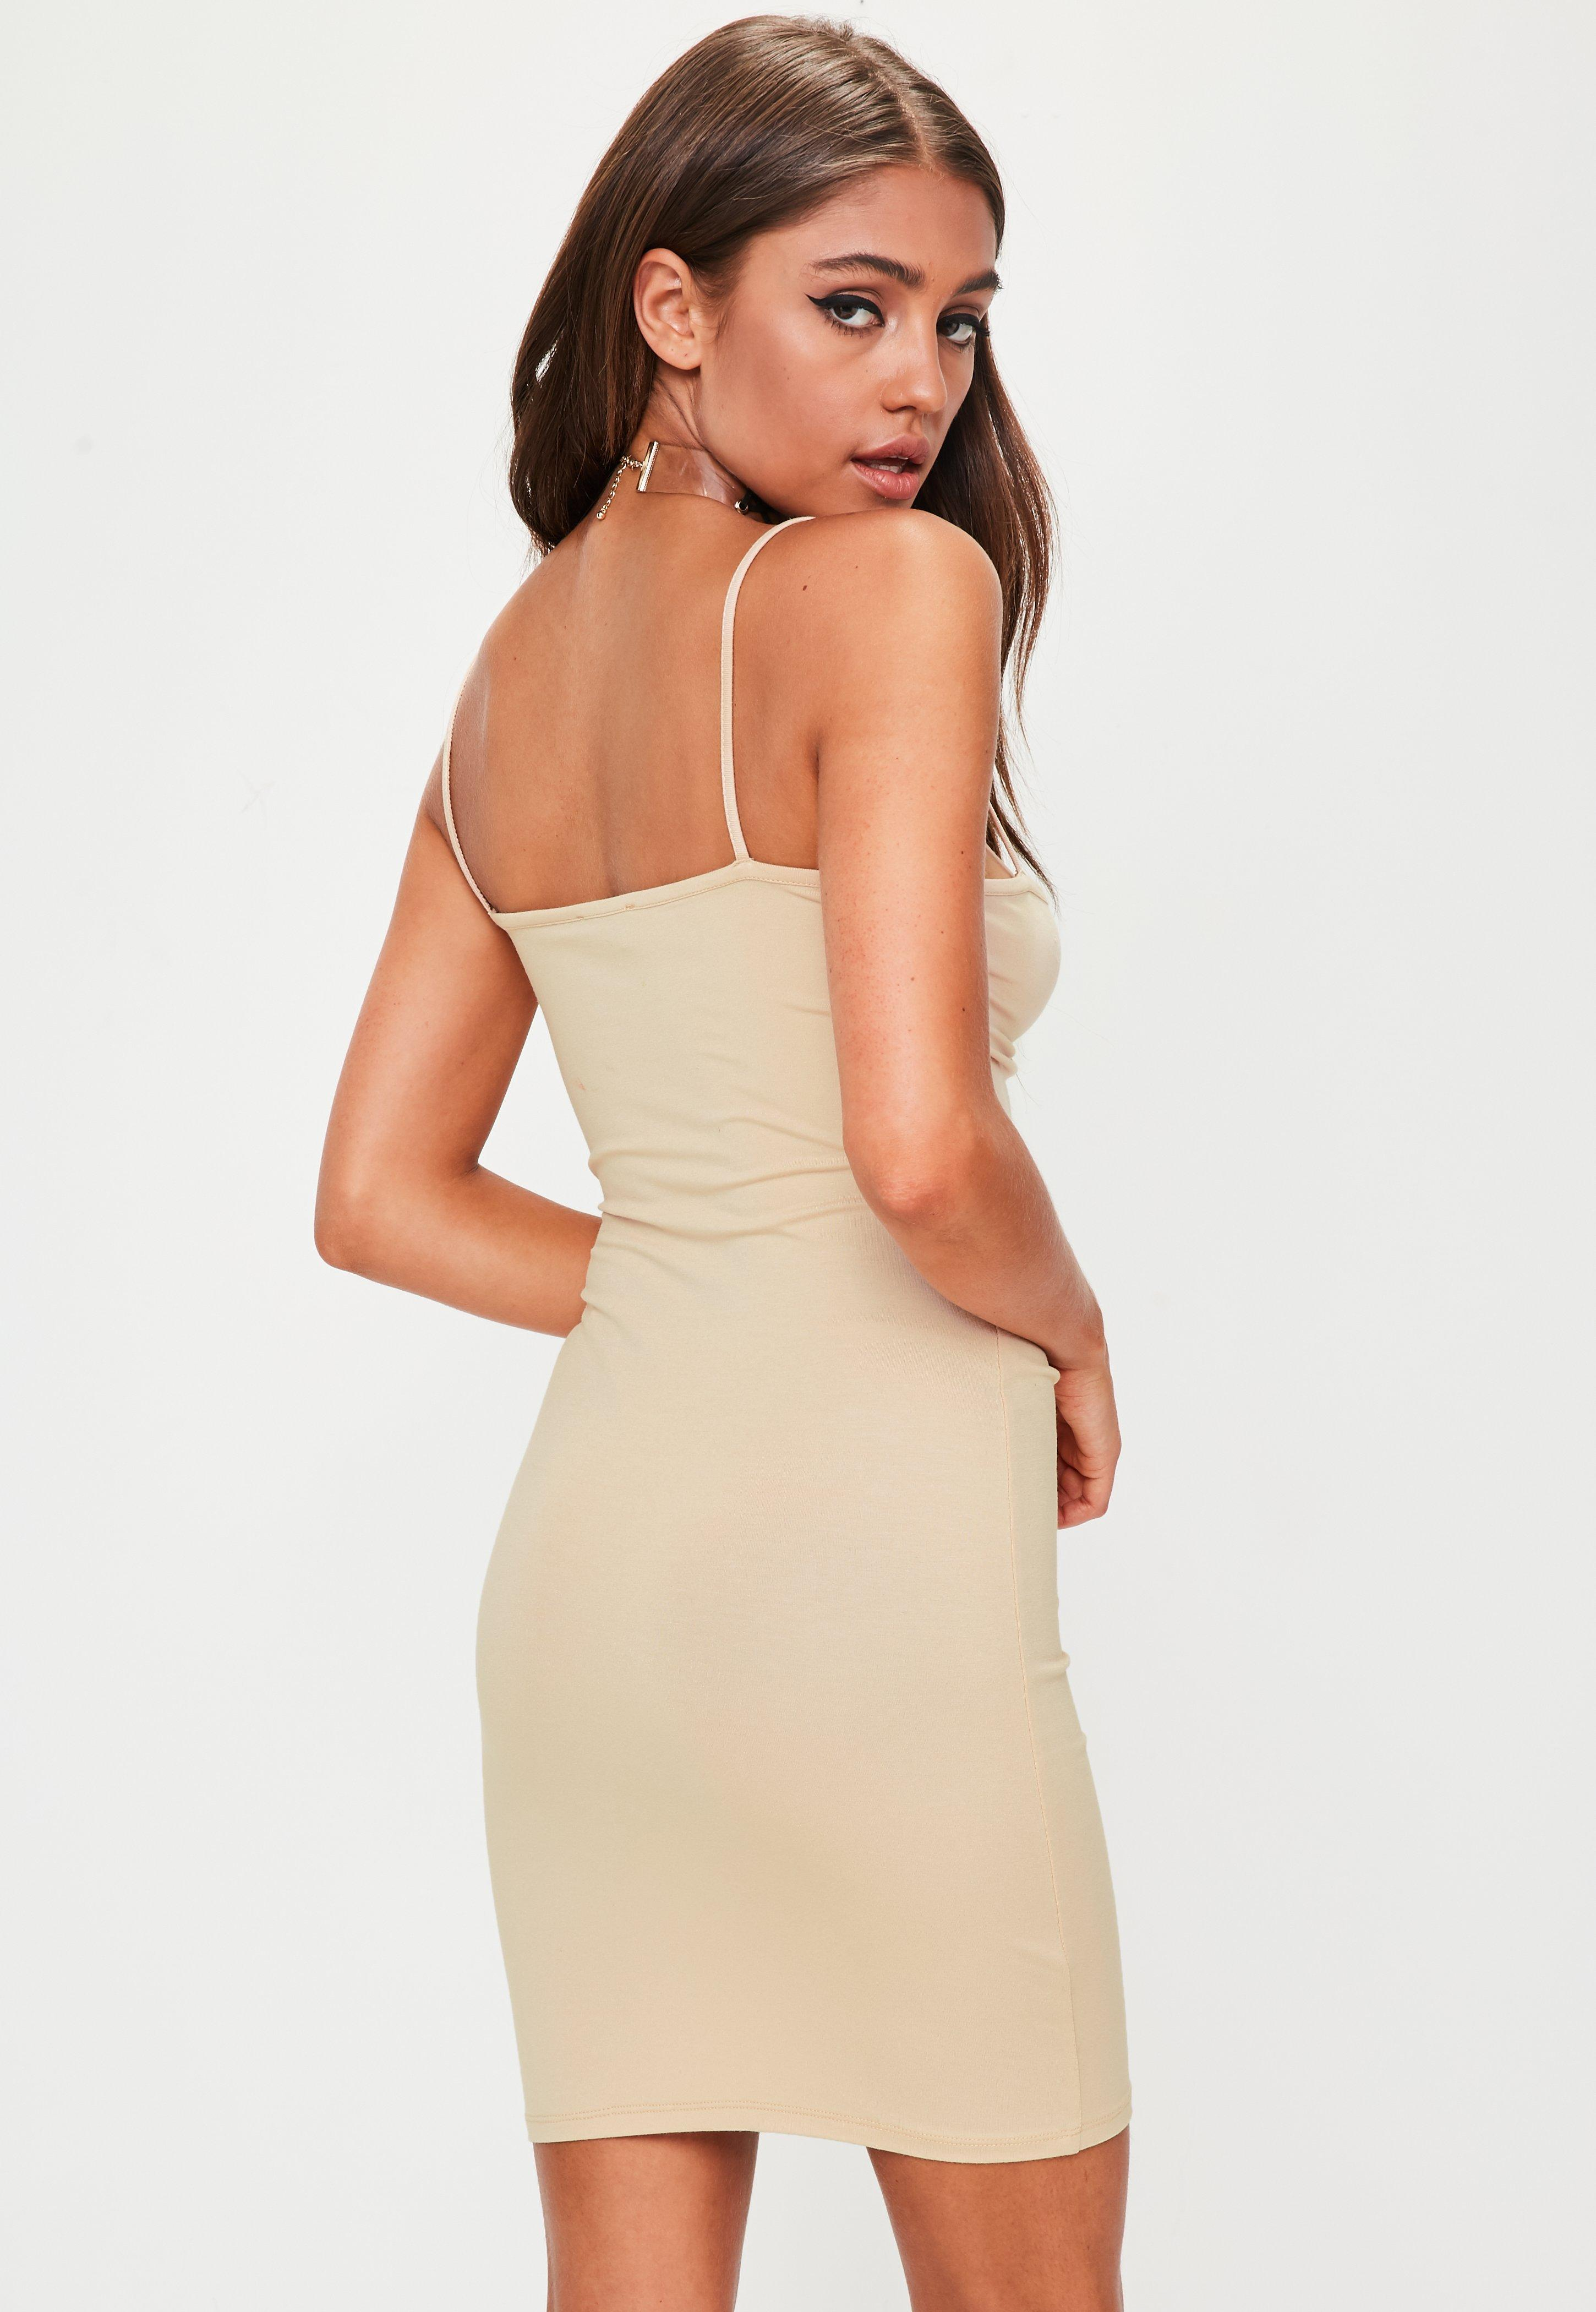 Lyst - Missguided Nude Faux Suede Scoop Back Bodycon Dress